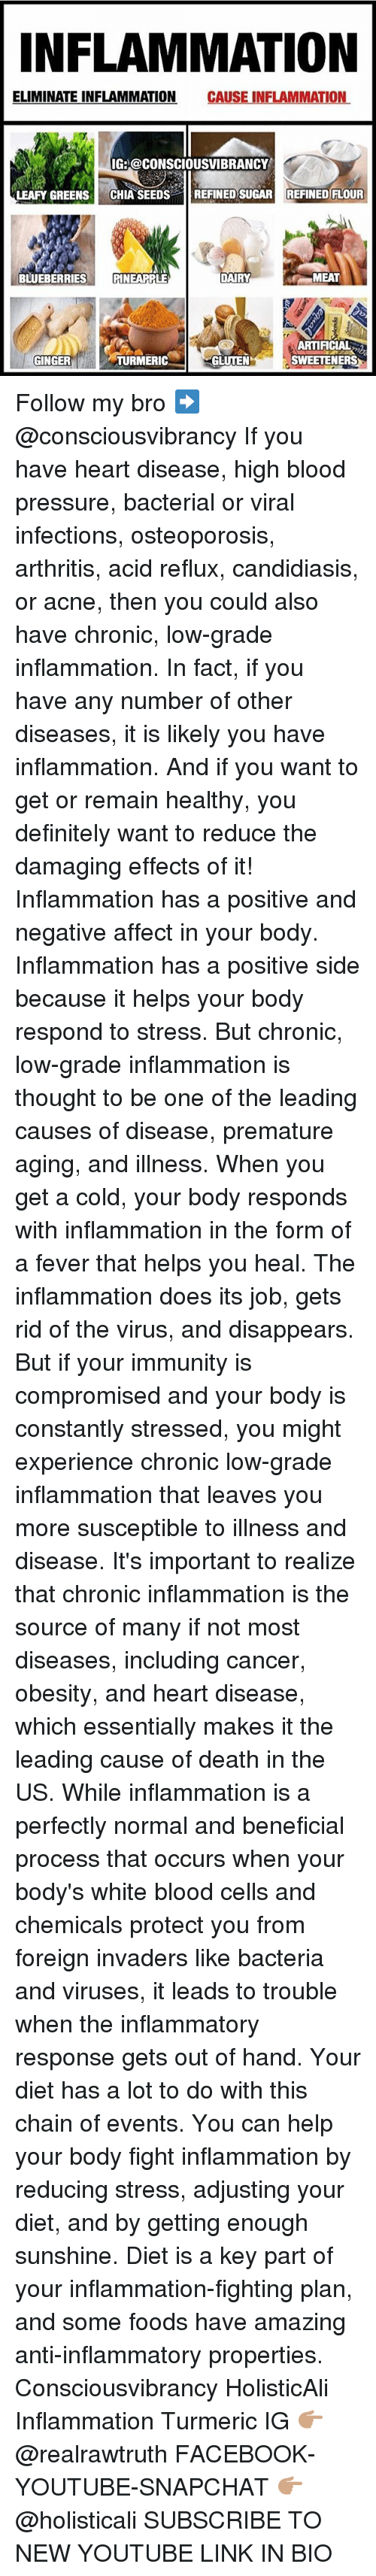 gets-out-of-hand: NFLAMMATION  ELIMINATE INFLAMMATION CAUSE INFLAMMATION  IG: @CONSCIOUSVIBRANCY  LEAFY GREENS CHIA SEEDSREFINED SUGAR REFINED FLOUR  BLUEBERRIESPINEAPPLE  MEAT  ARTIFICIAL  SWEETENERS  GINGER  TURMERIC  GLUTEN Follow my bro ➡️ @consciousvibrancy If you have heart disease, high blood pressure, bacterial or viral infections, osteoporosis, arthritis, acid reflux, candidiasis, or acne, then you could also have chronic, low-grade inflammation. In fact, if you have any number of other diseases, it is likely you have inflammation. And if you want to get or remain healthy, you definitely want to reduce the damaging effects of it! Inflammation has a positive and negative affect in your body. Inflammation has a positive side because it helps your body respond to stress. But chronic, low-grade inflammation is thought to be one of the leading causes of disease, premature aging, and illness. When you get a cold, your body responds with inflammation in the form of a fever that helps you heal. The inflammation does its job, gets rid of the virus, and disappears. But if your immunity is compromised and your body is constantly stressed, you might experience chronic low-grade inflammation that leaves you more susceptible to illness and disease. It's important to realize that chronic inflammation is the source of many if not most diseases, including cancer, obesity, and heart disease, which essentially makes it the leading cause of death in the US. While inflammation is a perfectly normal and beneficial process that occurs when your body's white blood cells and chemicals protect you from foreign invaders like bacteria and viruses, it leads to trouble when the inflammatory response gets out of hand. Your diet has a lot to do with this chain of events. You can help your body fight inflammation by reducing stress, adjusting your diet, and by getting enough sunshine. Diet is a key part of your inflammation-fighting plan, and some foods have amazing anti-inflammatory prope